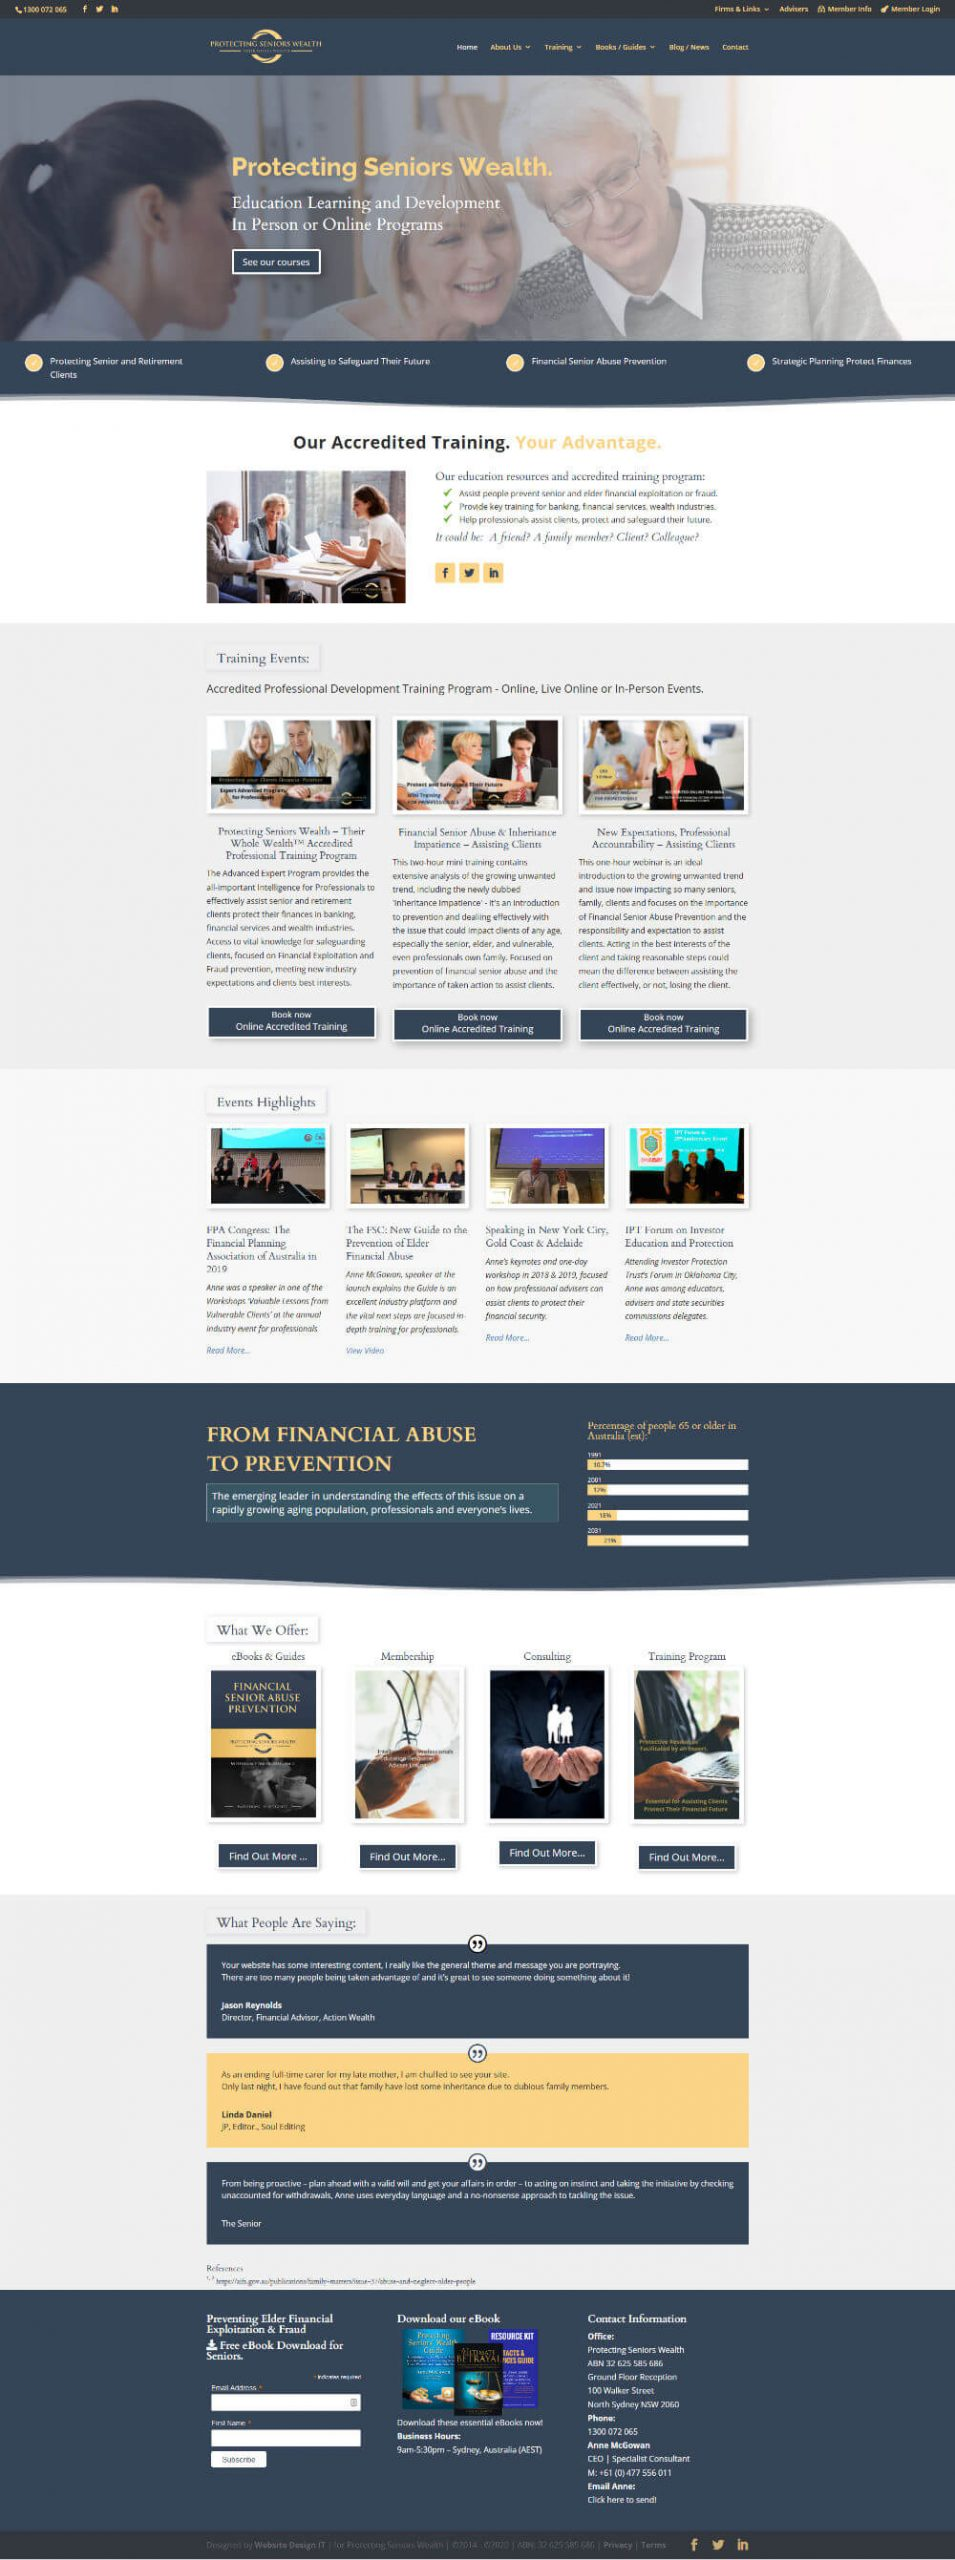 Protecting Seniors Wealth Web Design Project